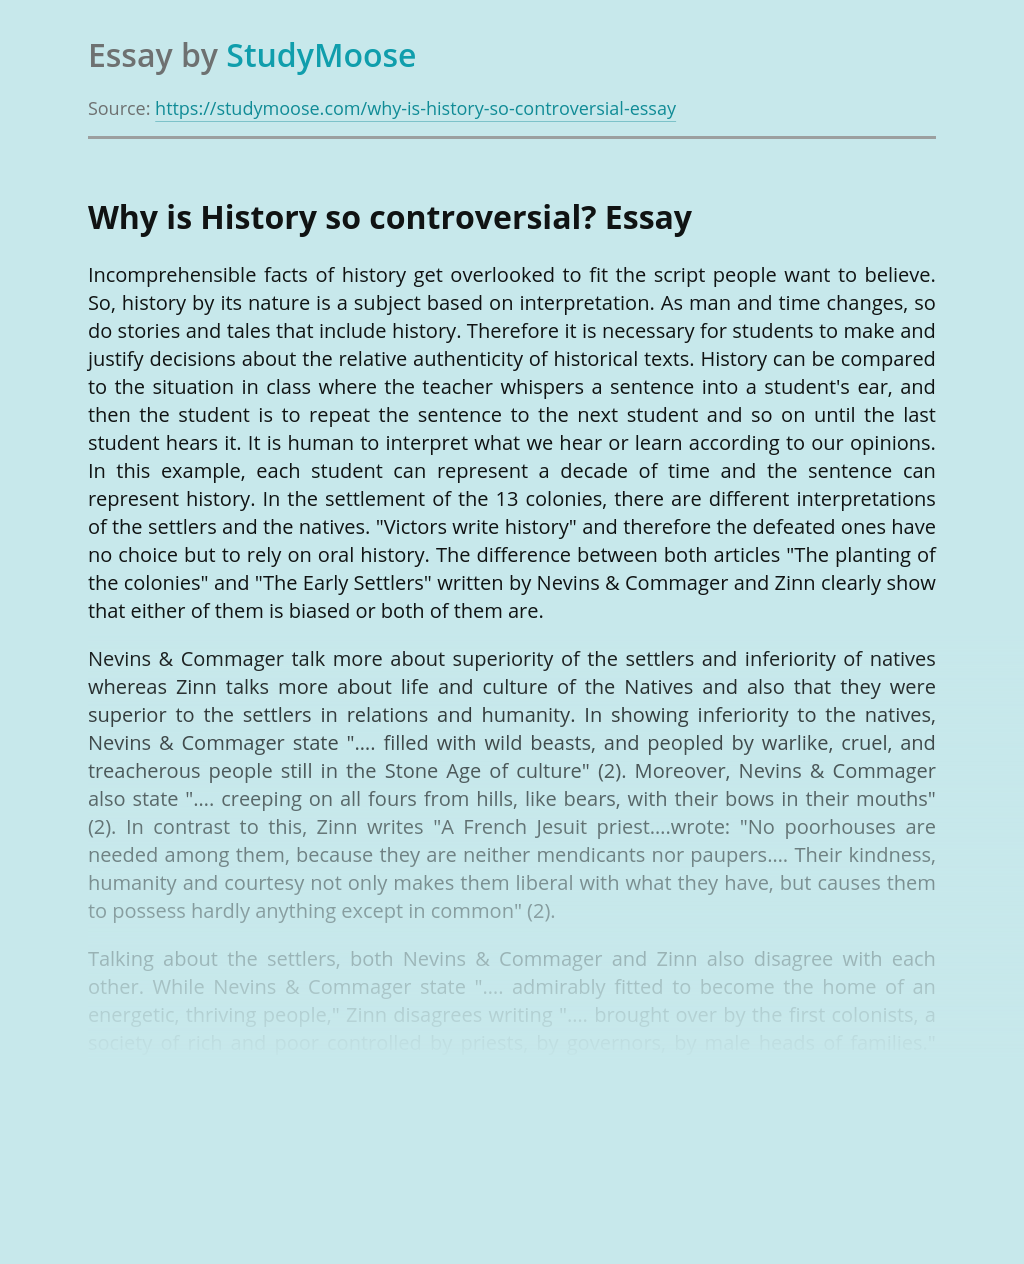 Why is History so controversial?